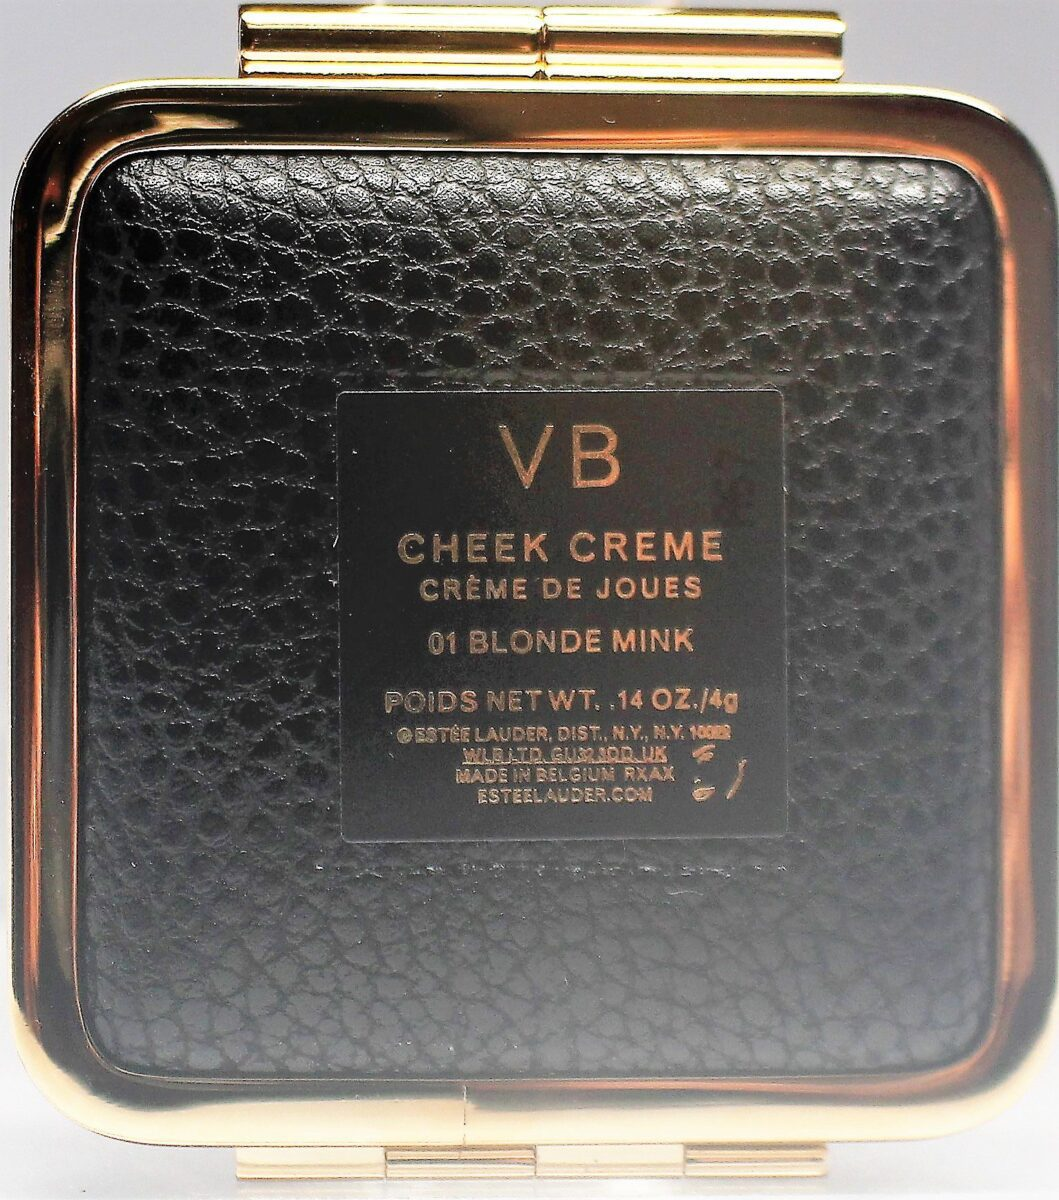 the back of the compact has the initials VB and the color of the creme blush - blonde mink